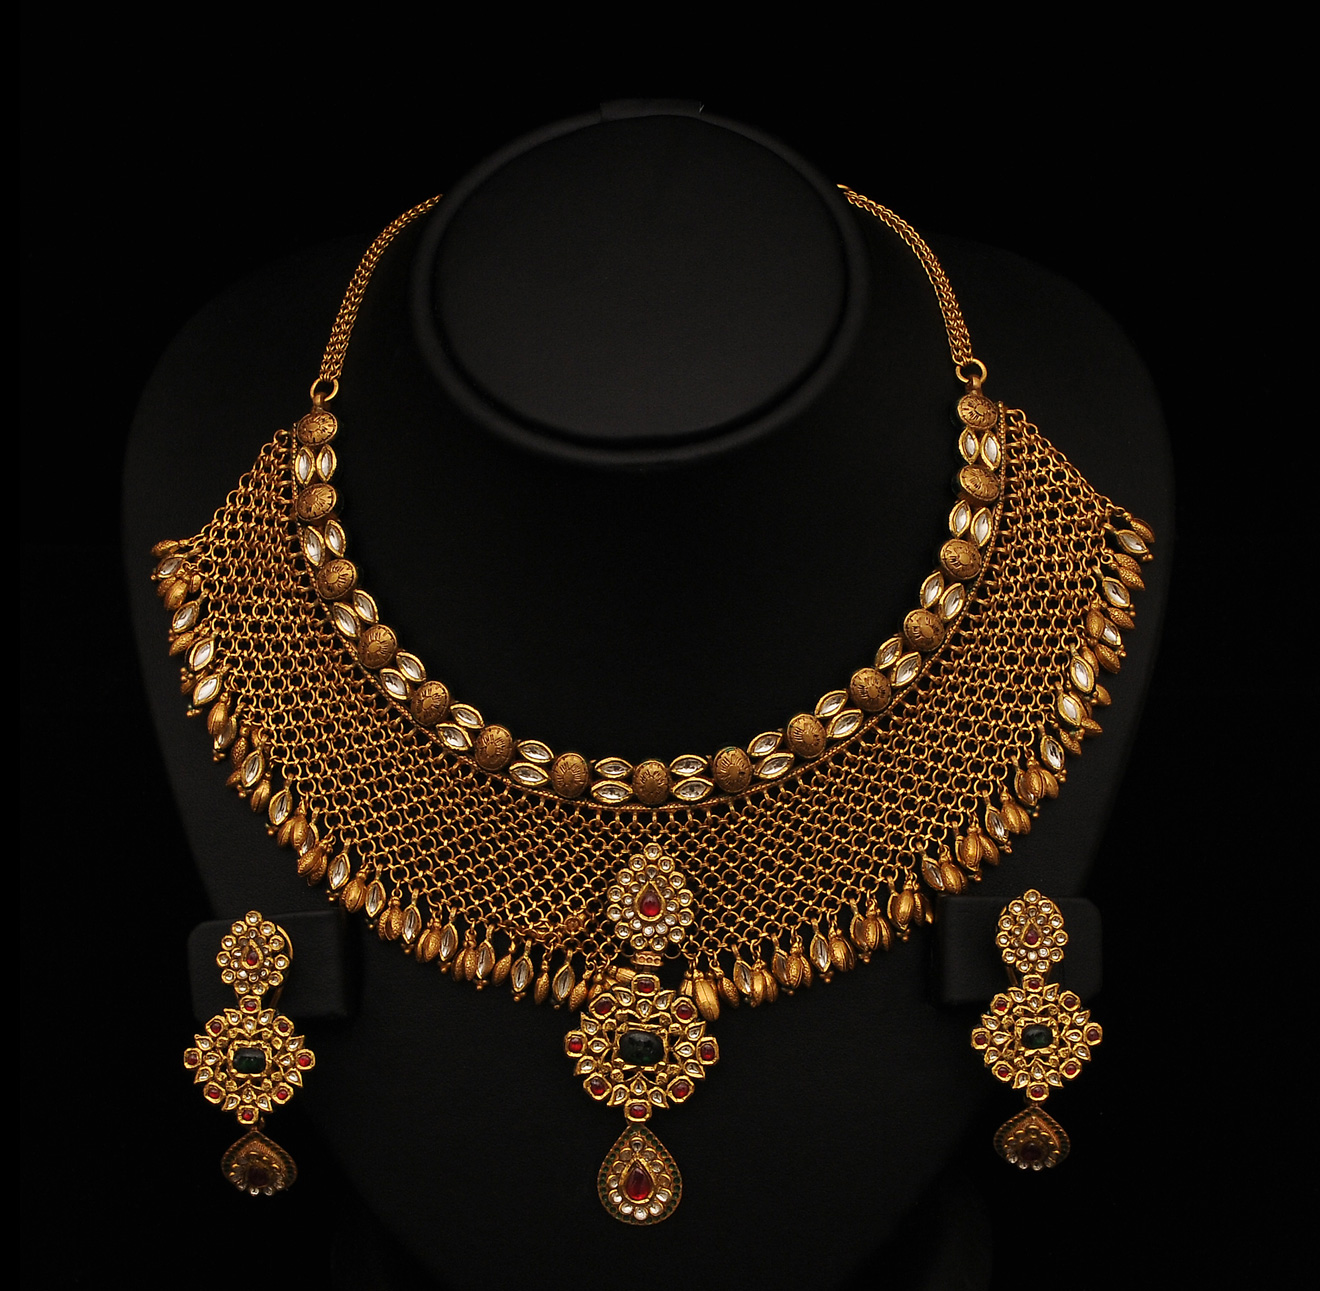 kundan jewellery & Necklace's designs | SUDHAKAR GOLD WORKS